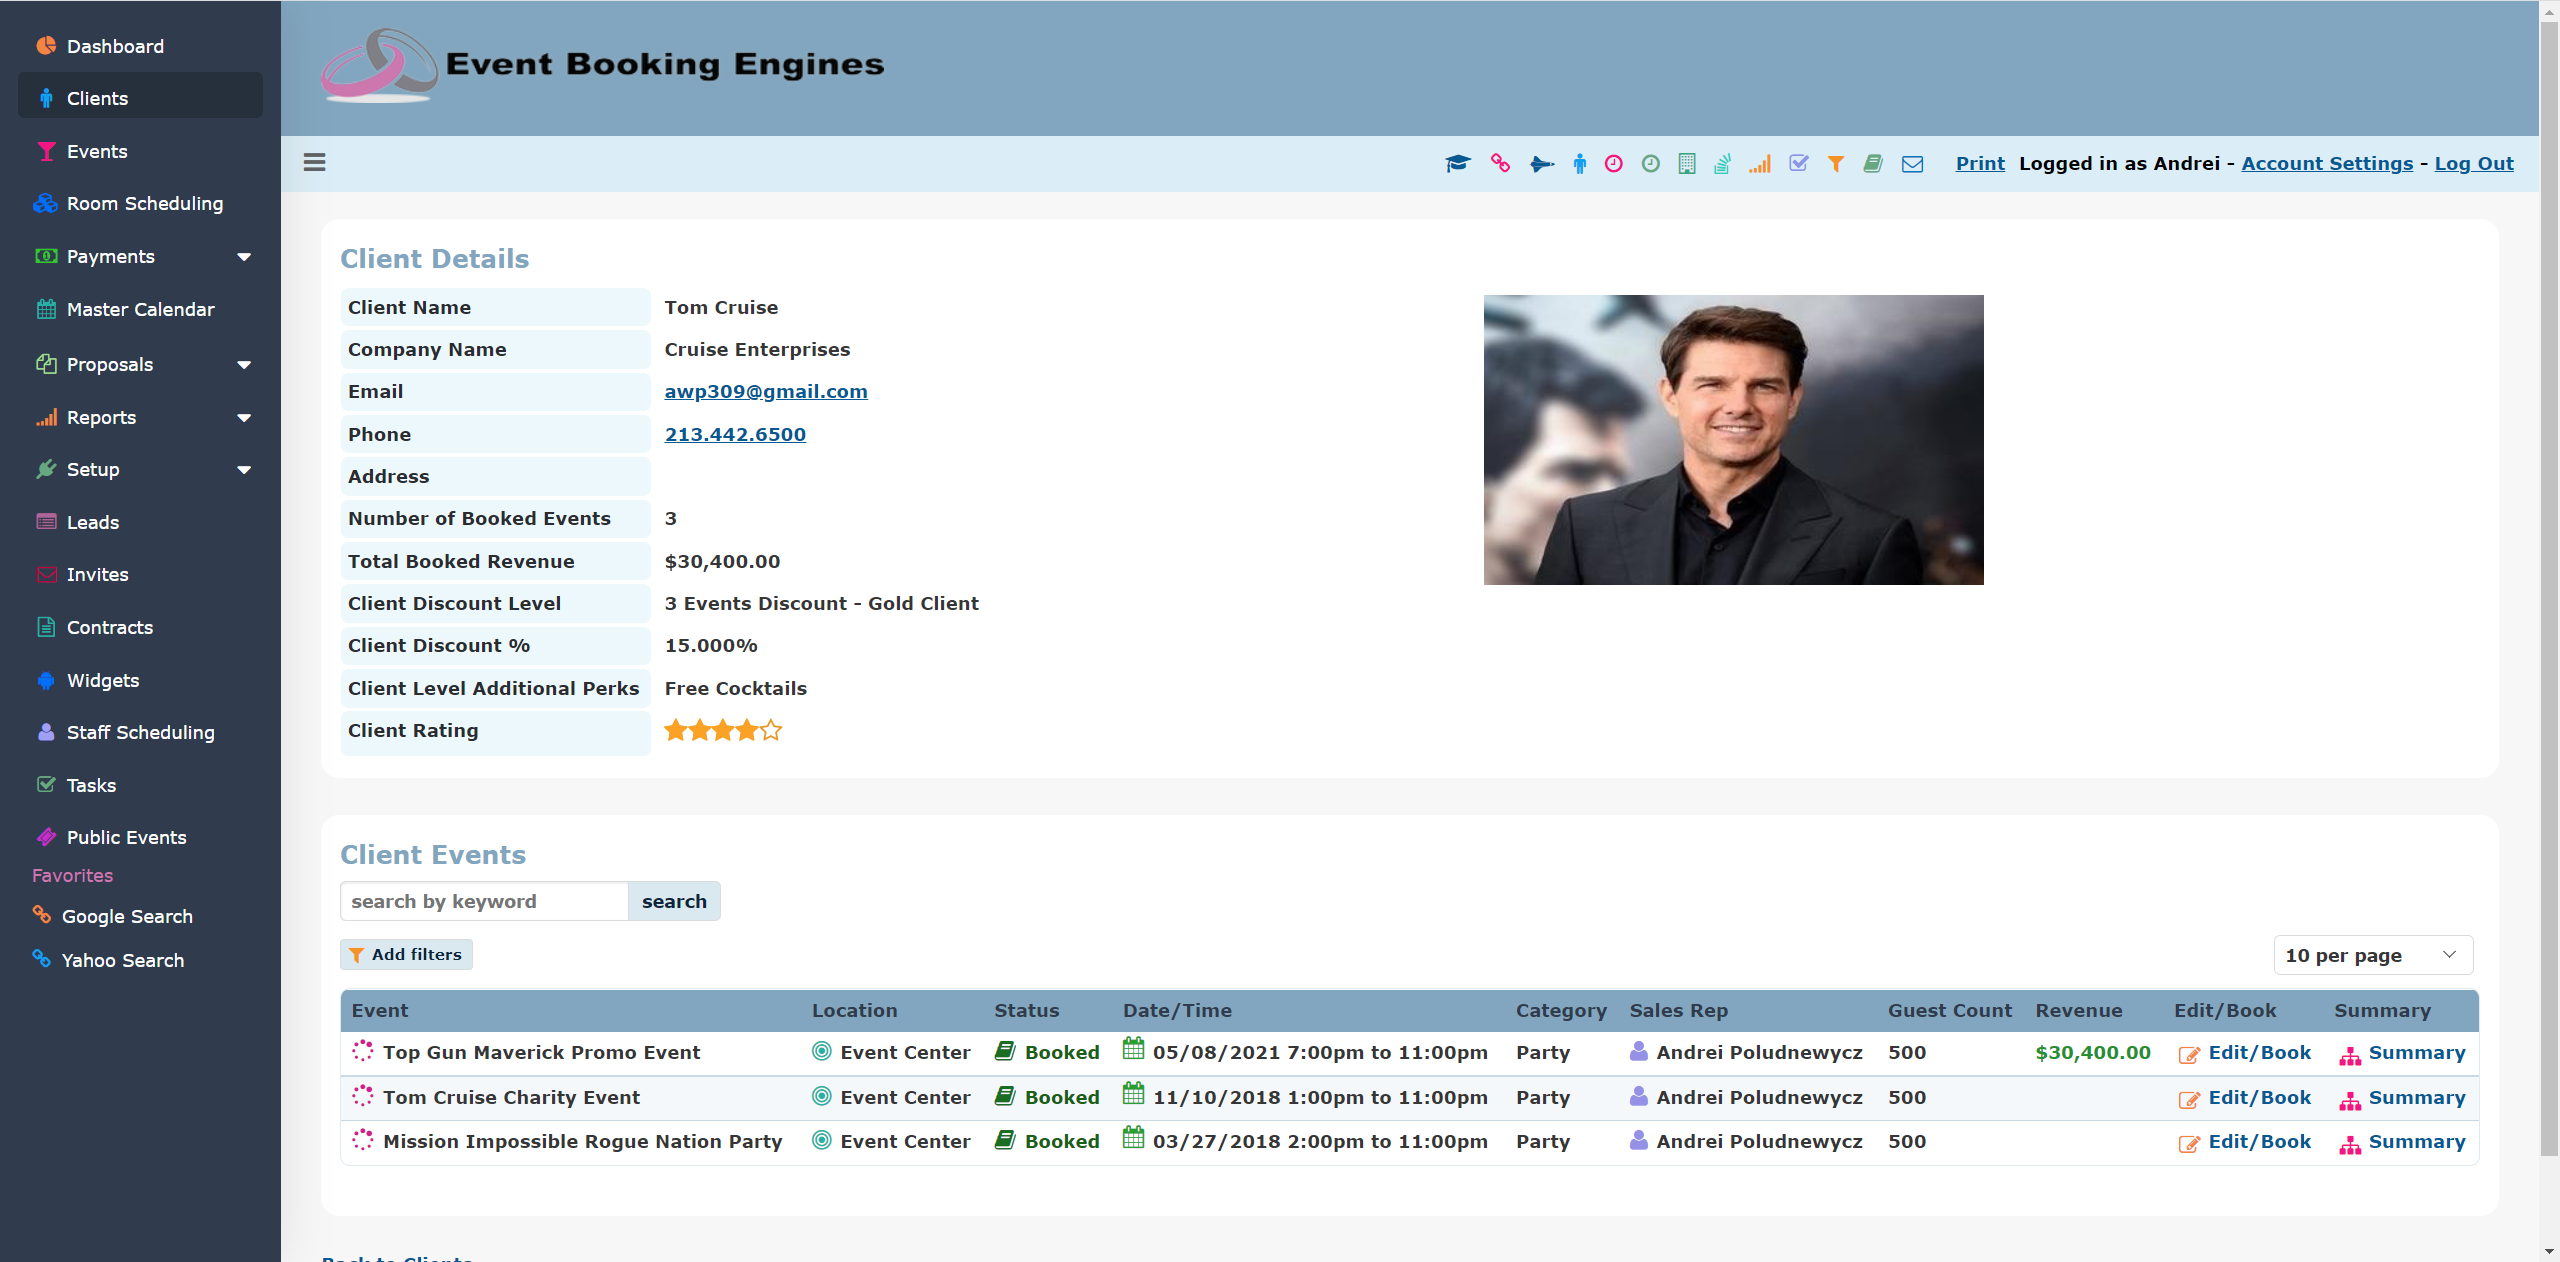 Event Booking Engines Software - Client Details and Client Events